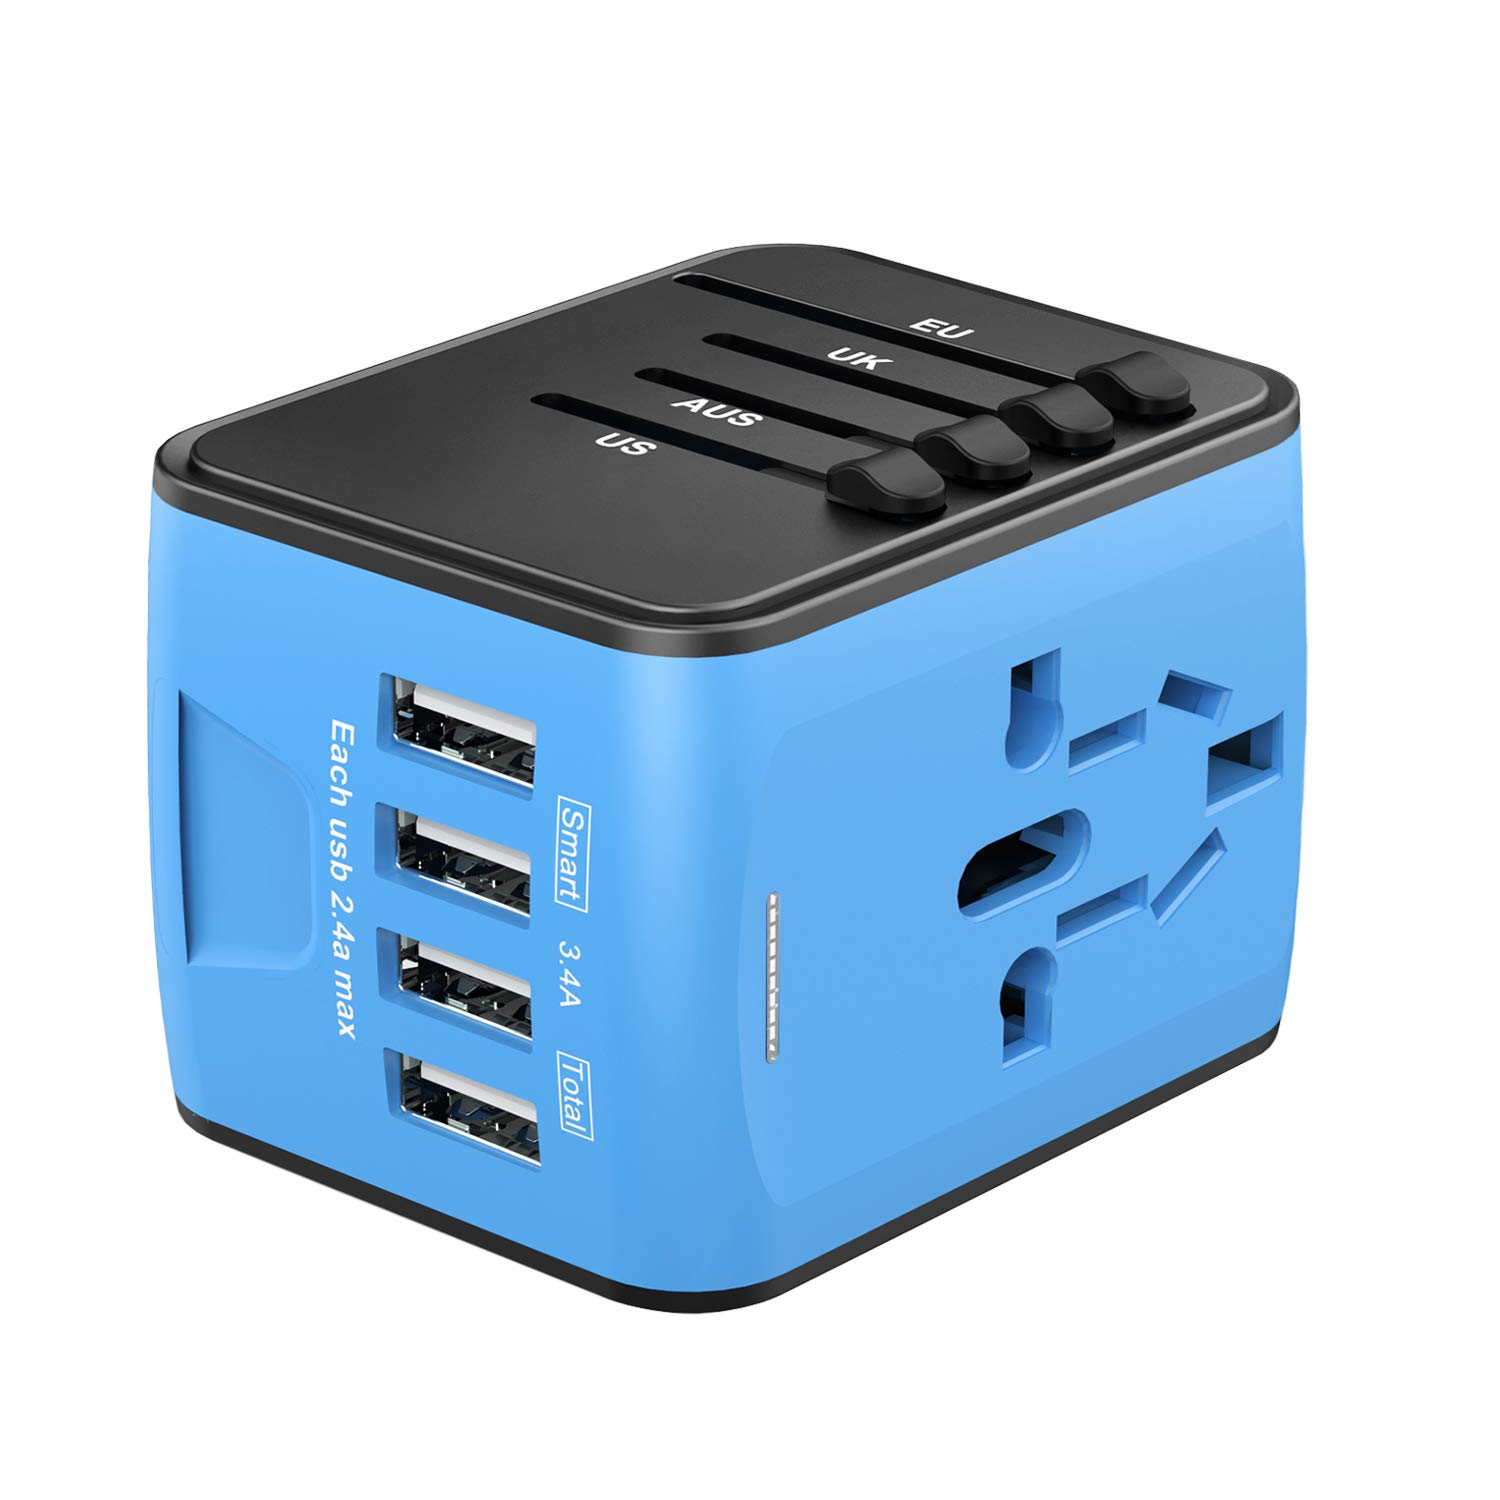 Universal Travel Adapter, Worldwide International Power Adapter with 4 USB  Ports, All in One Wall Charger AC Travel Plug Adapter Converter for UK USA